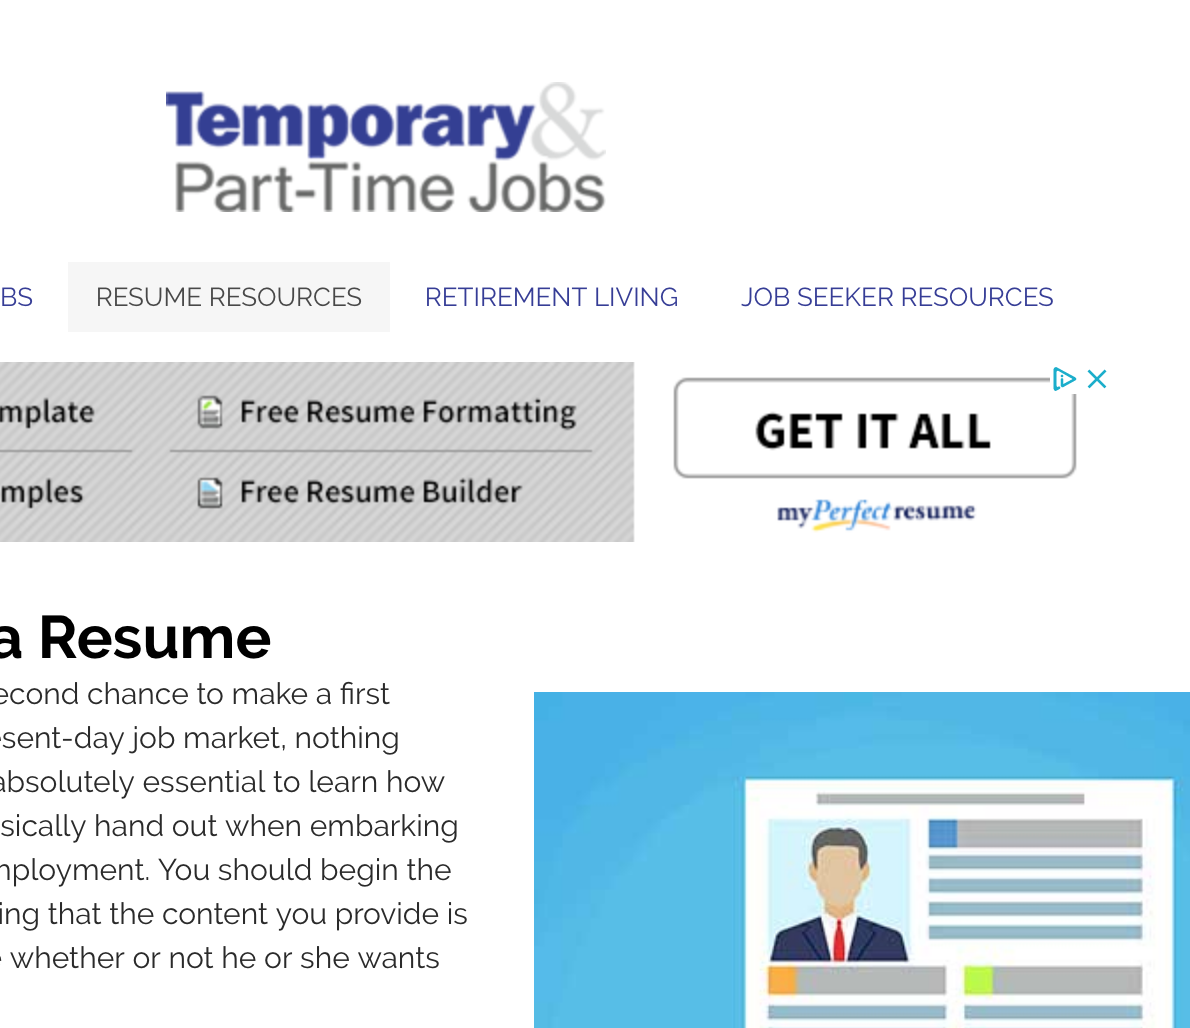 Temparary and Part-Time Jobs